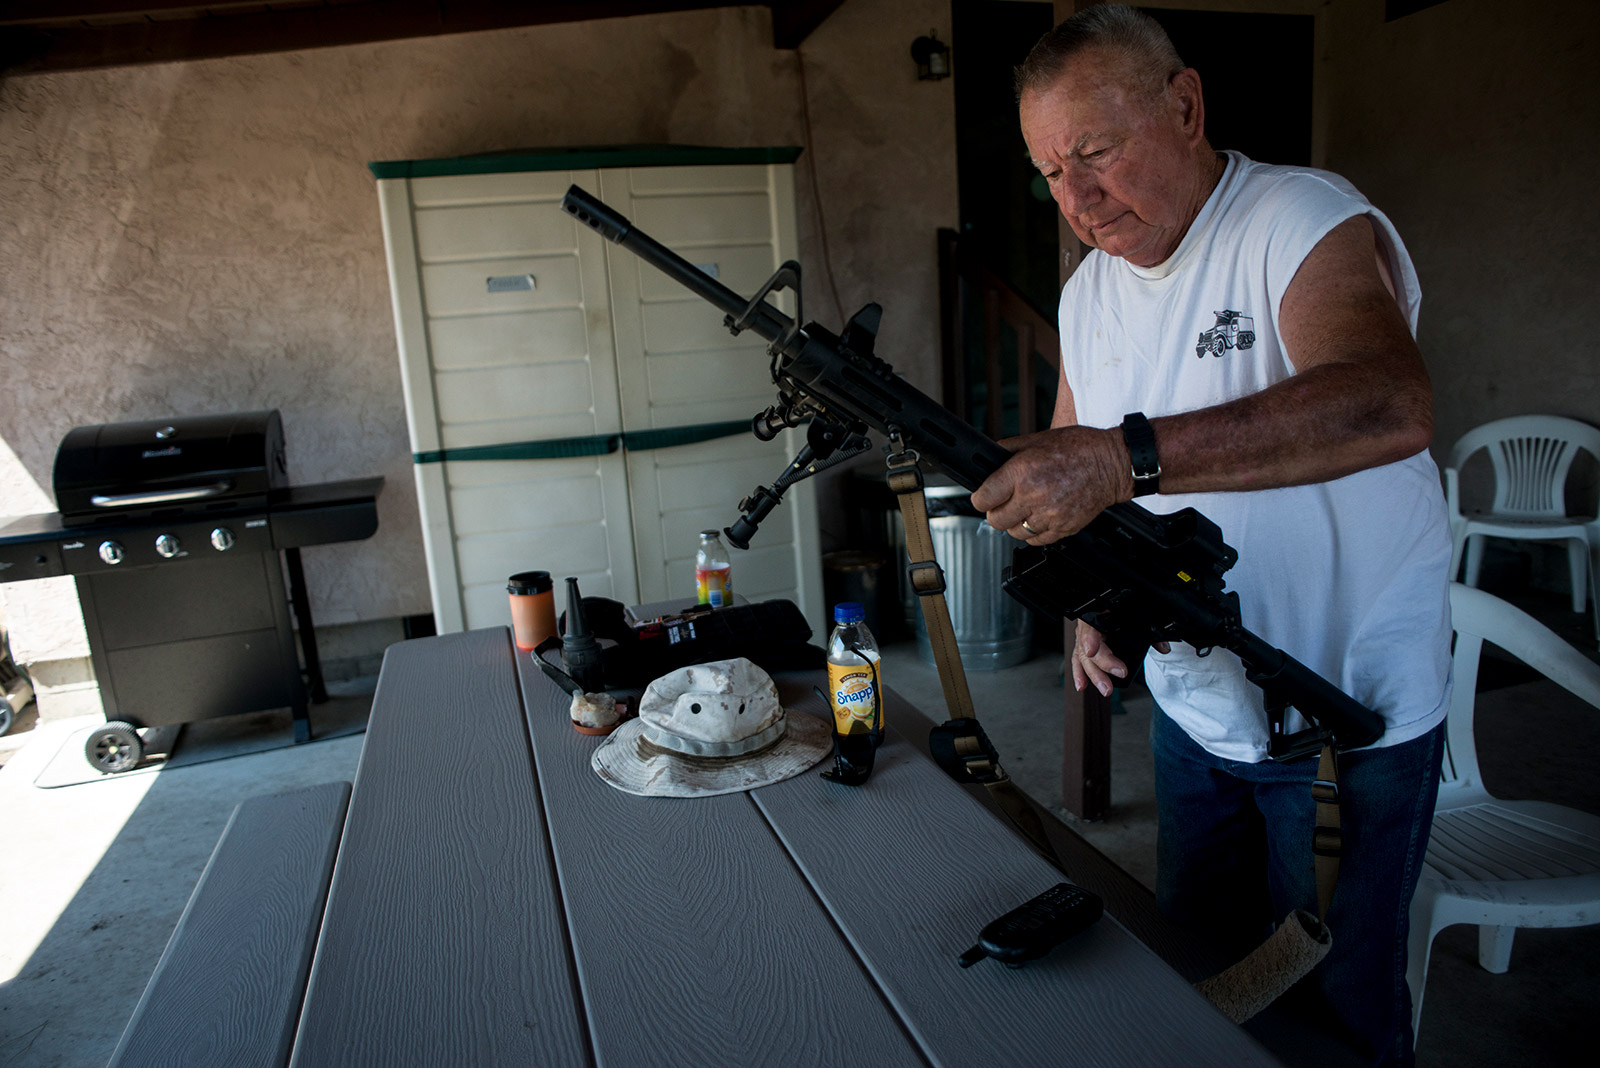 Bob Maupin removes ammunition from his AR-10, or ArmaLite Rifle, after returning from a tour of his Boulevard property along the U.S-Mexico border on Aug. 30, 2017. <em>(Brandon Quester/inewsource)</em>